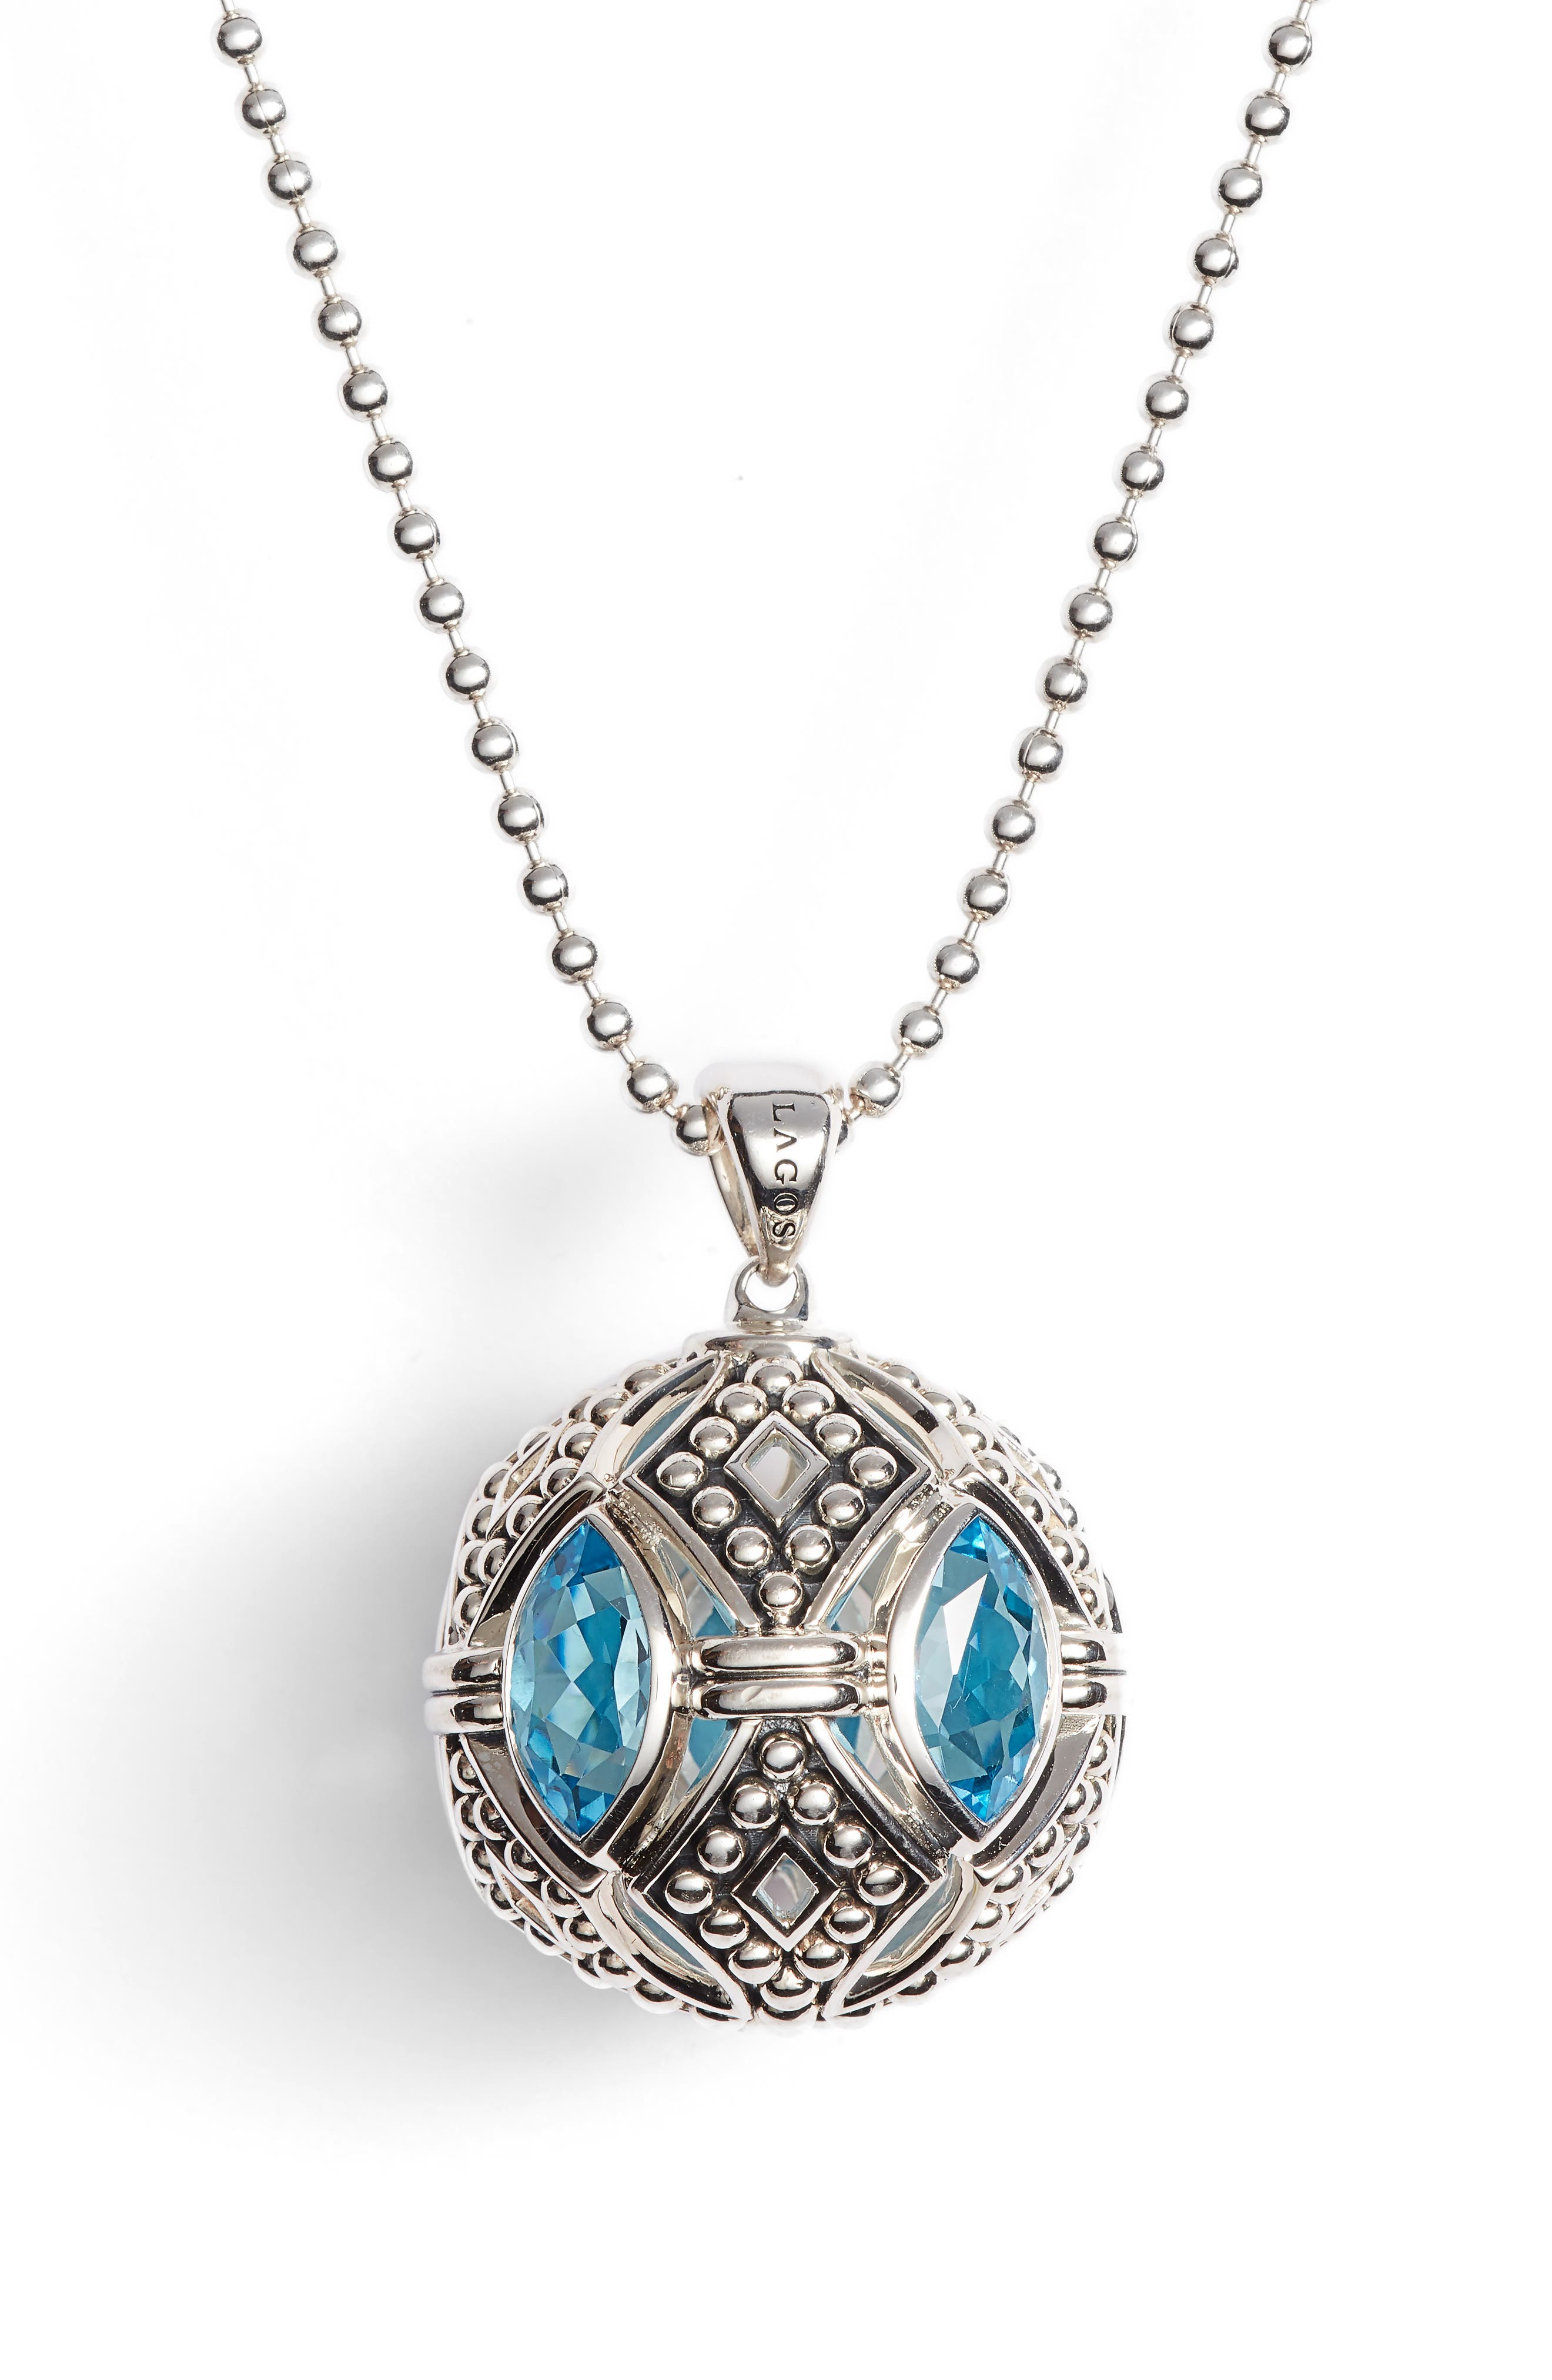 Signature Gifts Marquee Ball Pendant Necklace,                             Main thumbnail 1, color,                             Silver/ Blue Topaz